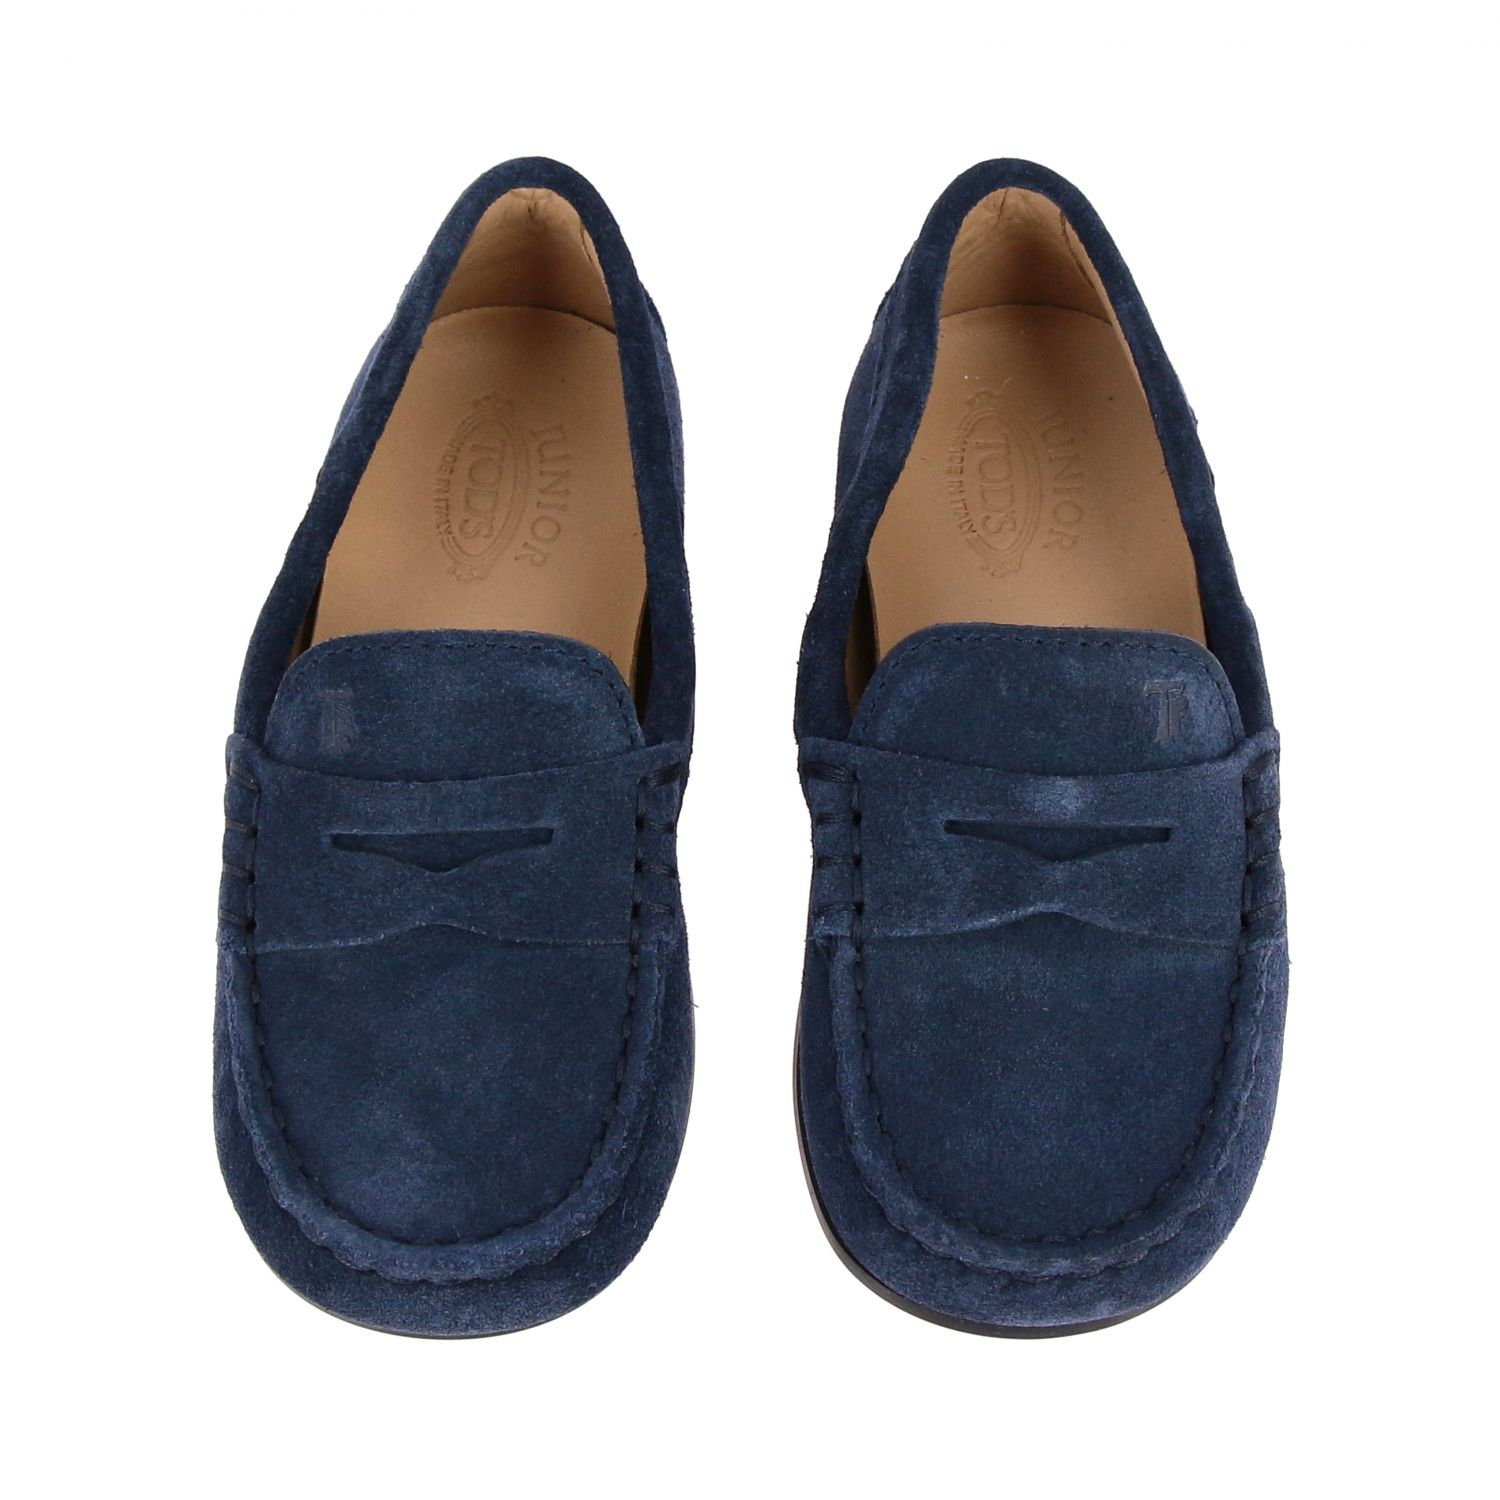 Shoes kids Tod's navy 3